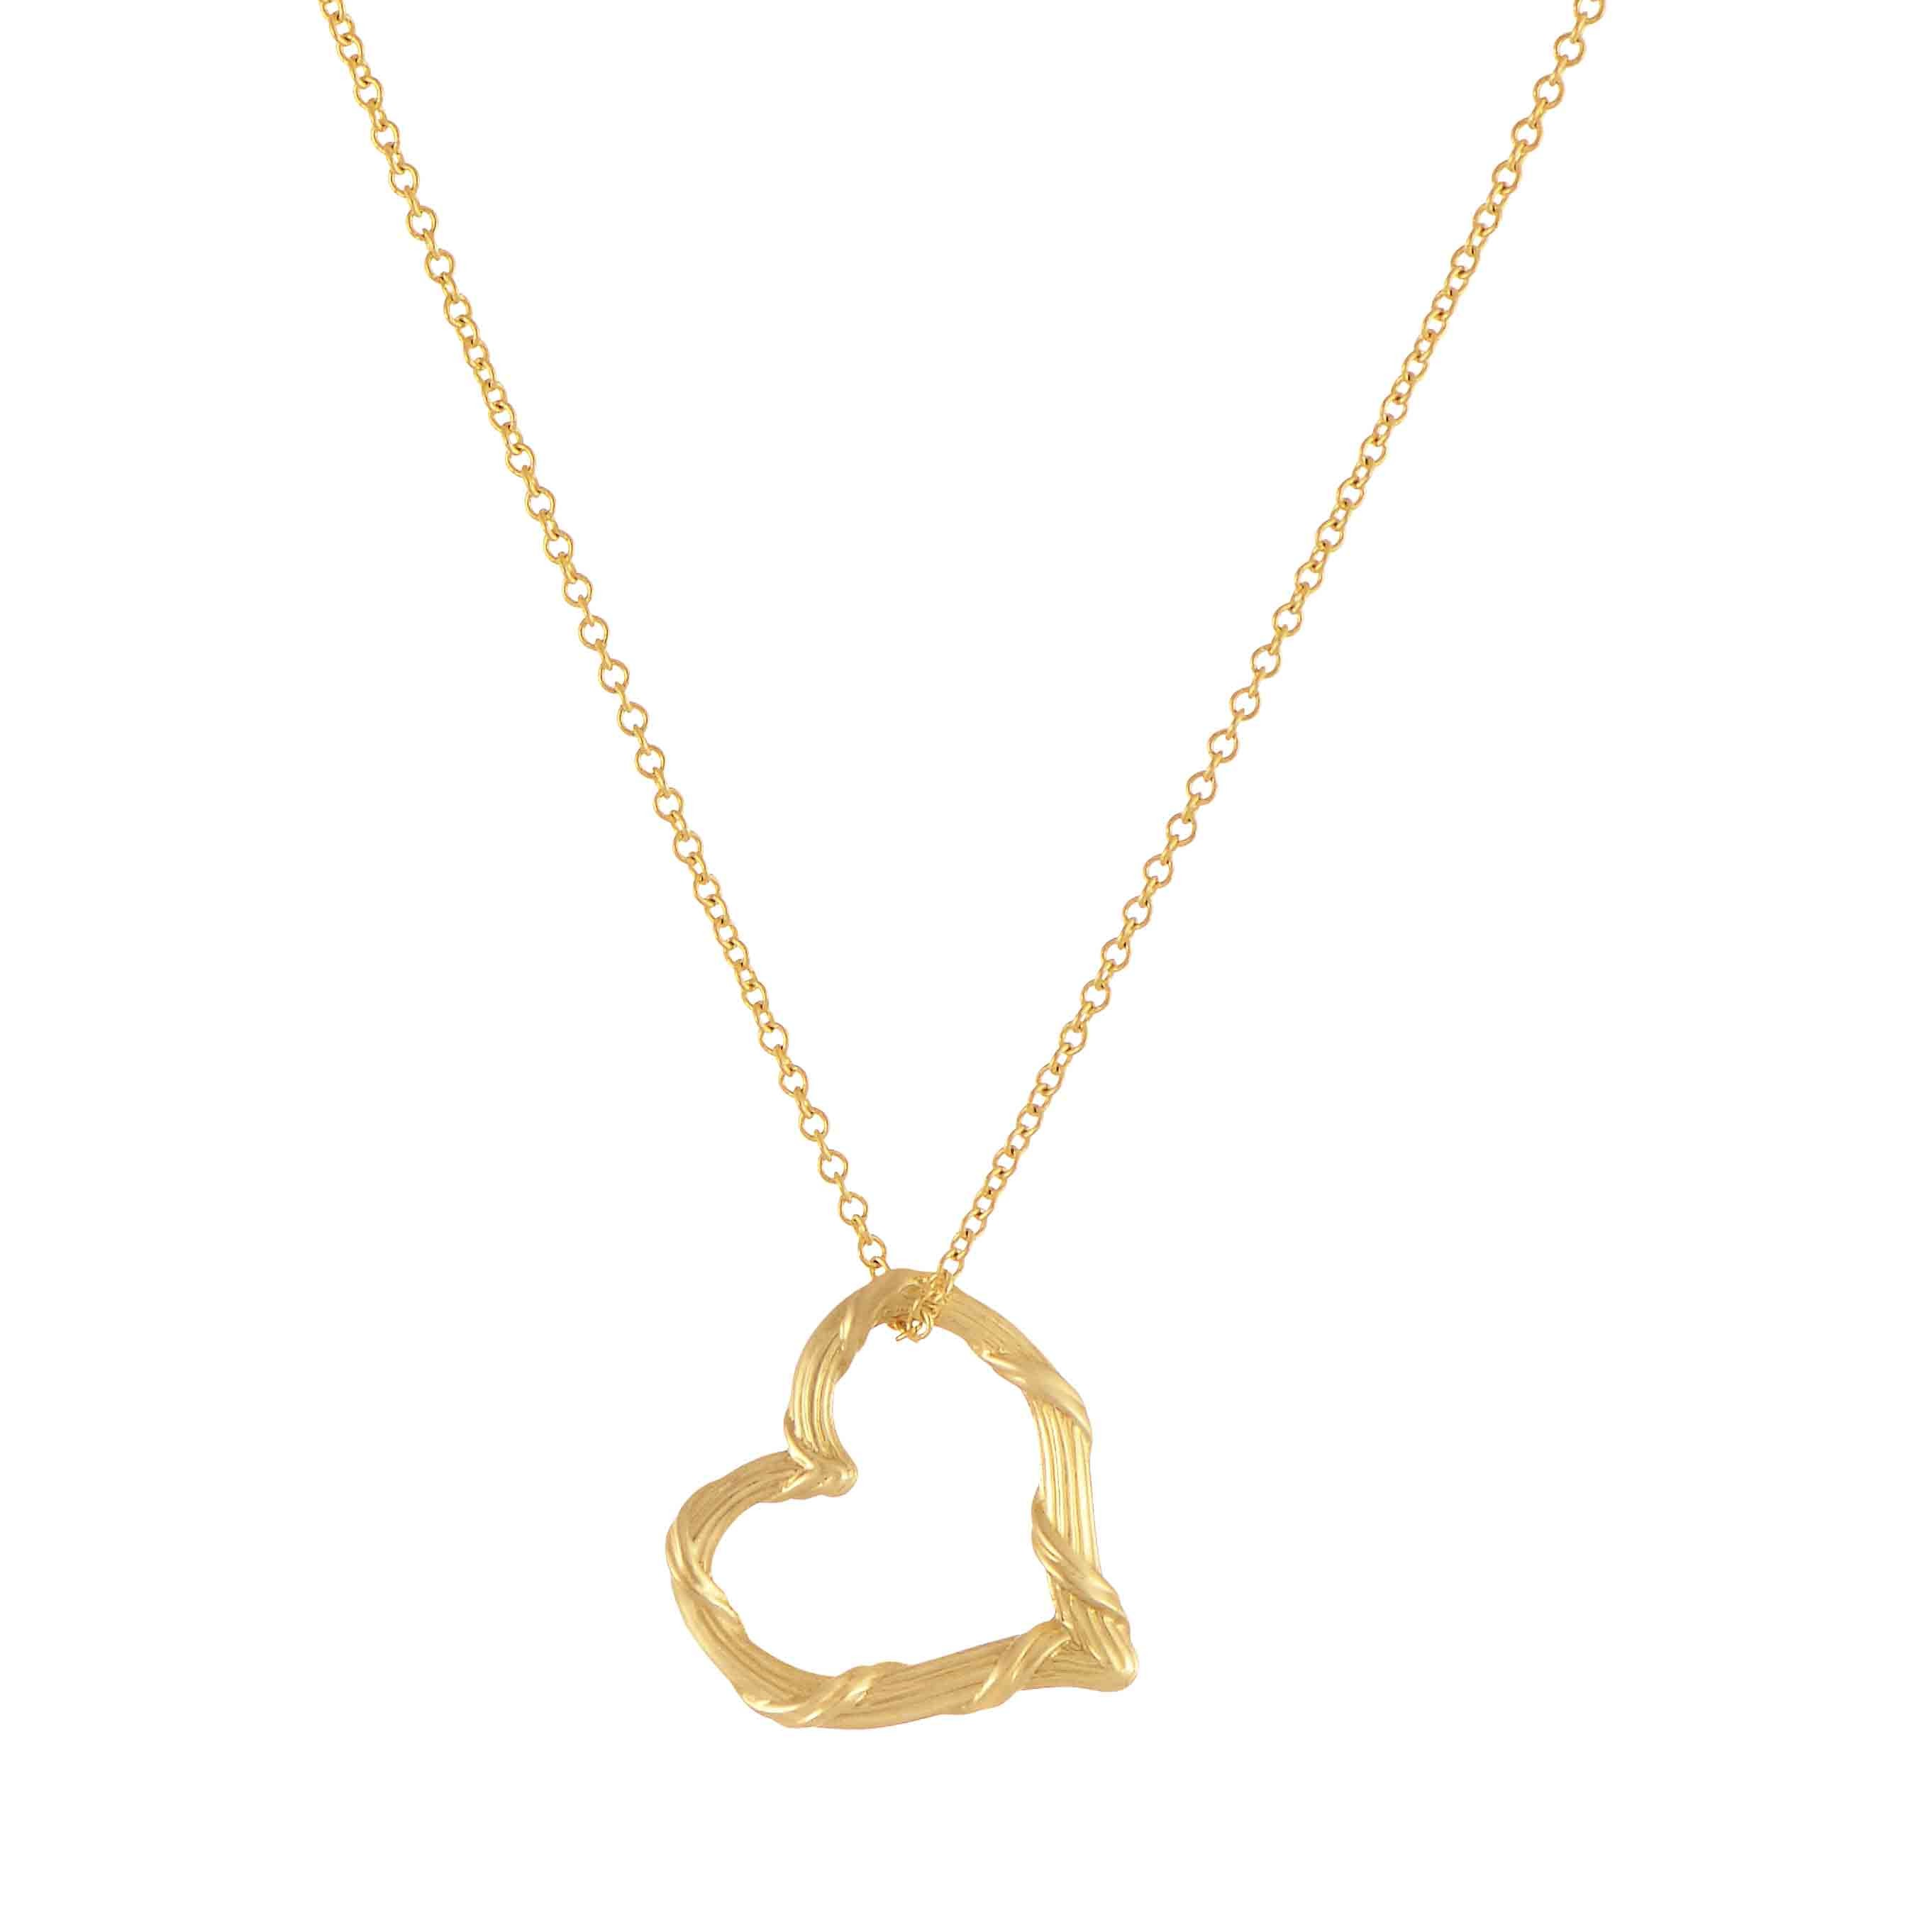 necklace cash delivery philippines heart shopee on gold jewelry i bestseller